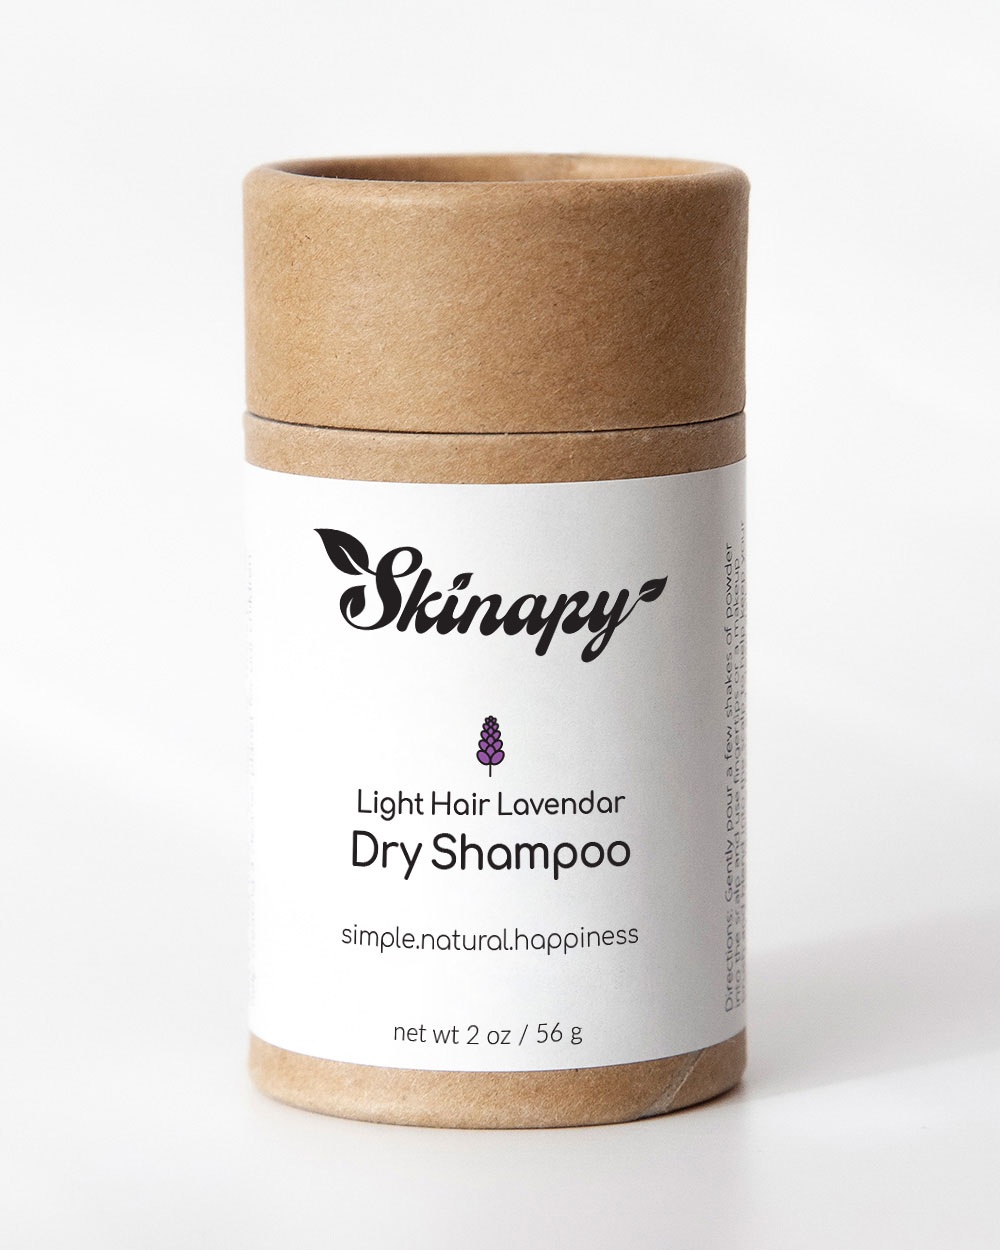 Skinapy natural organic dry shampoo for light hair with lavender sweet orange scent